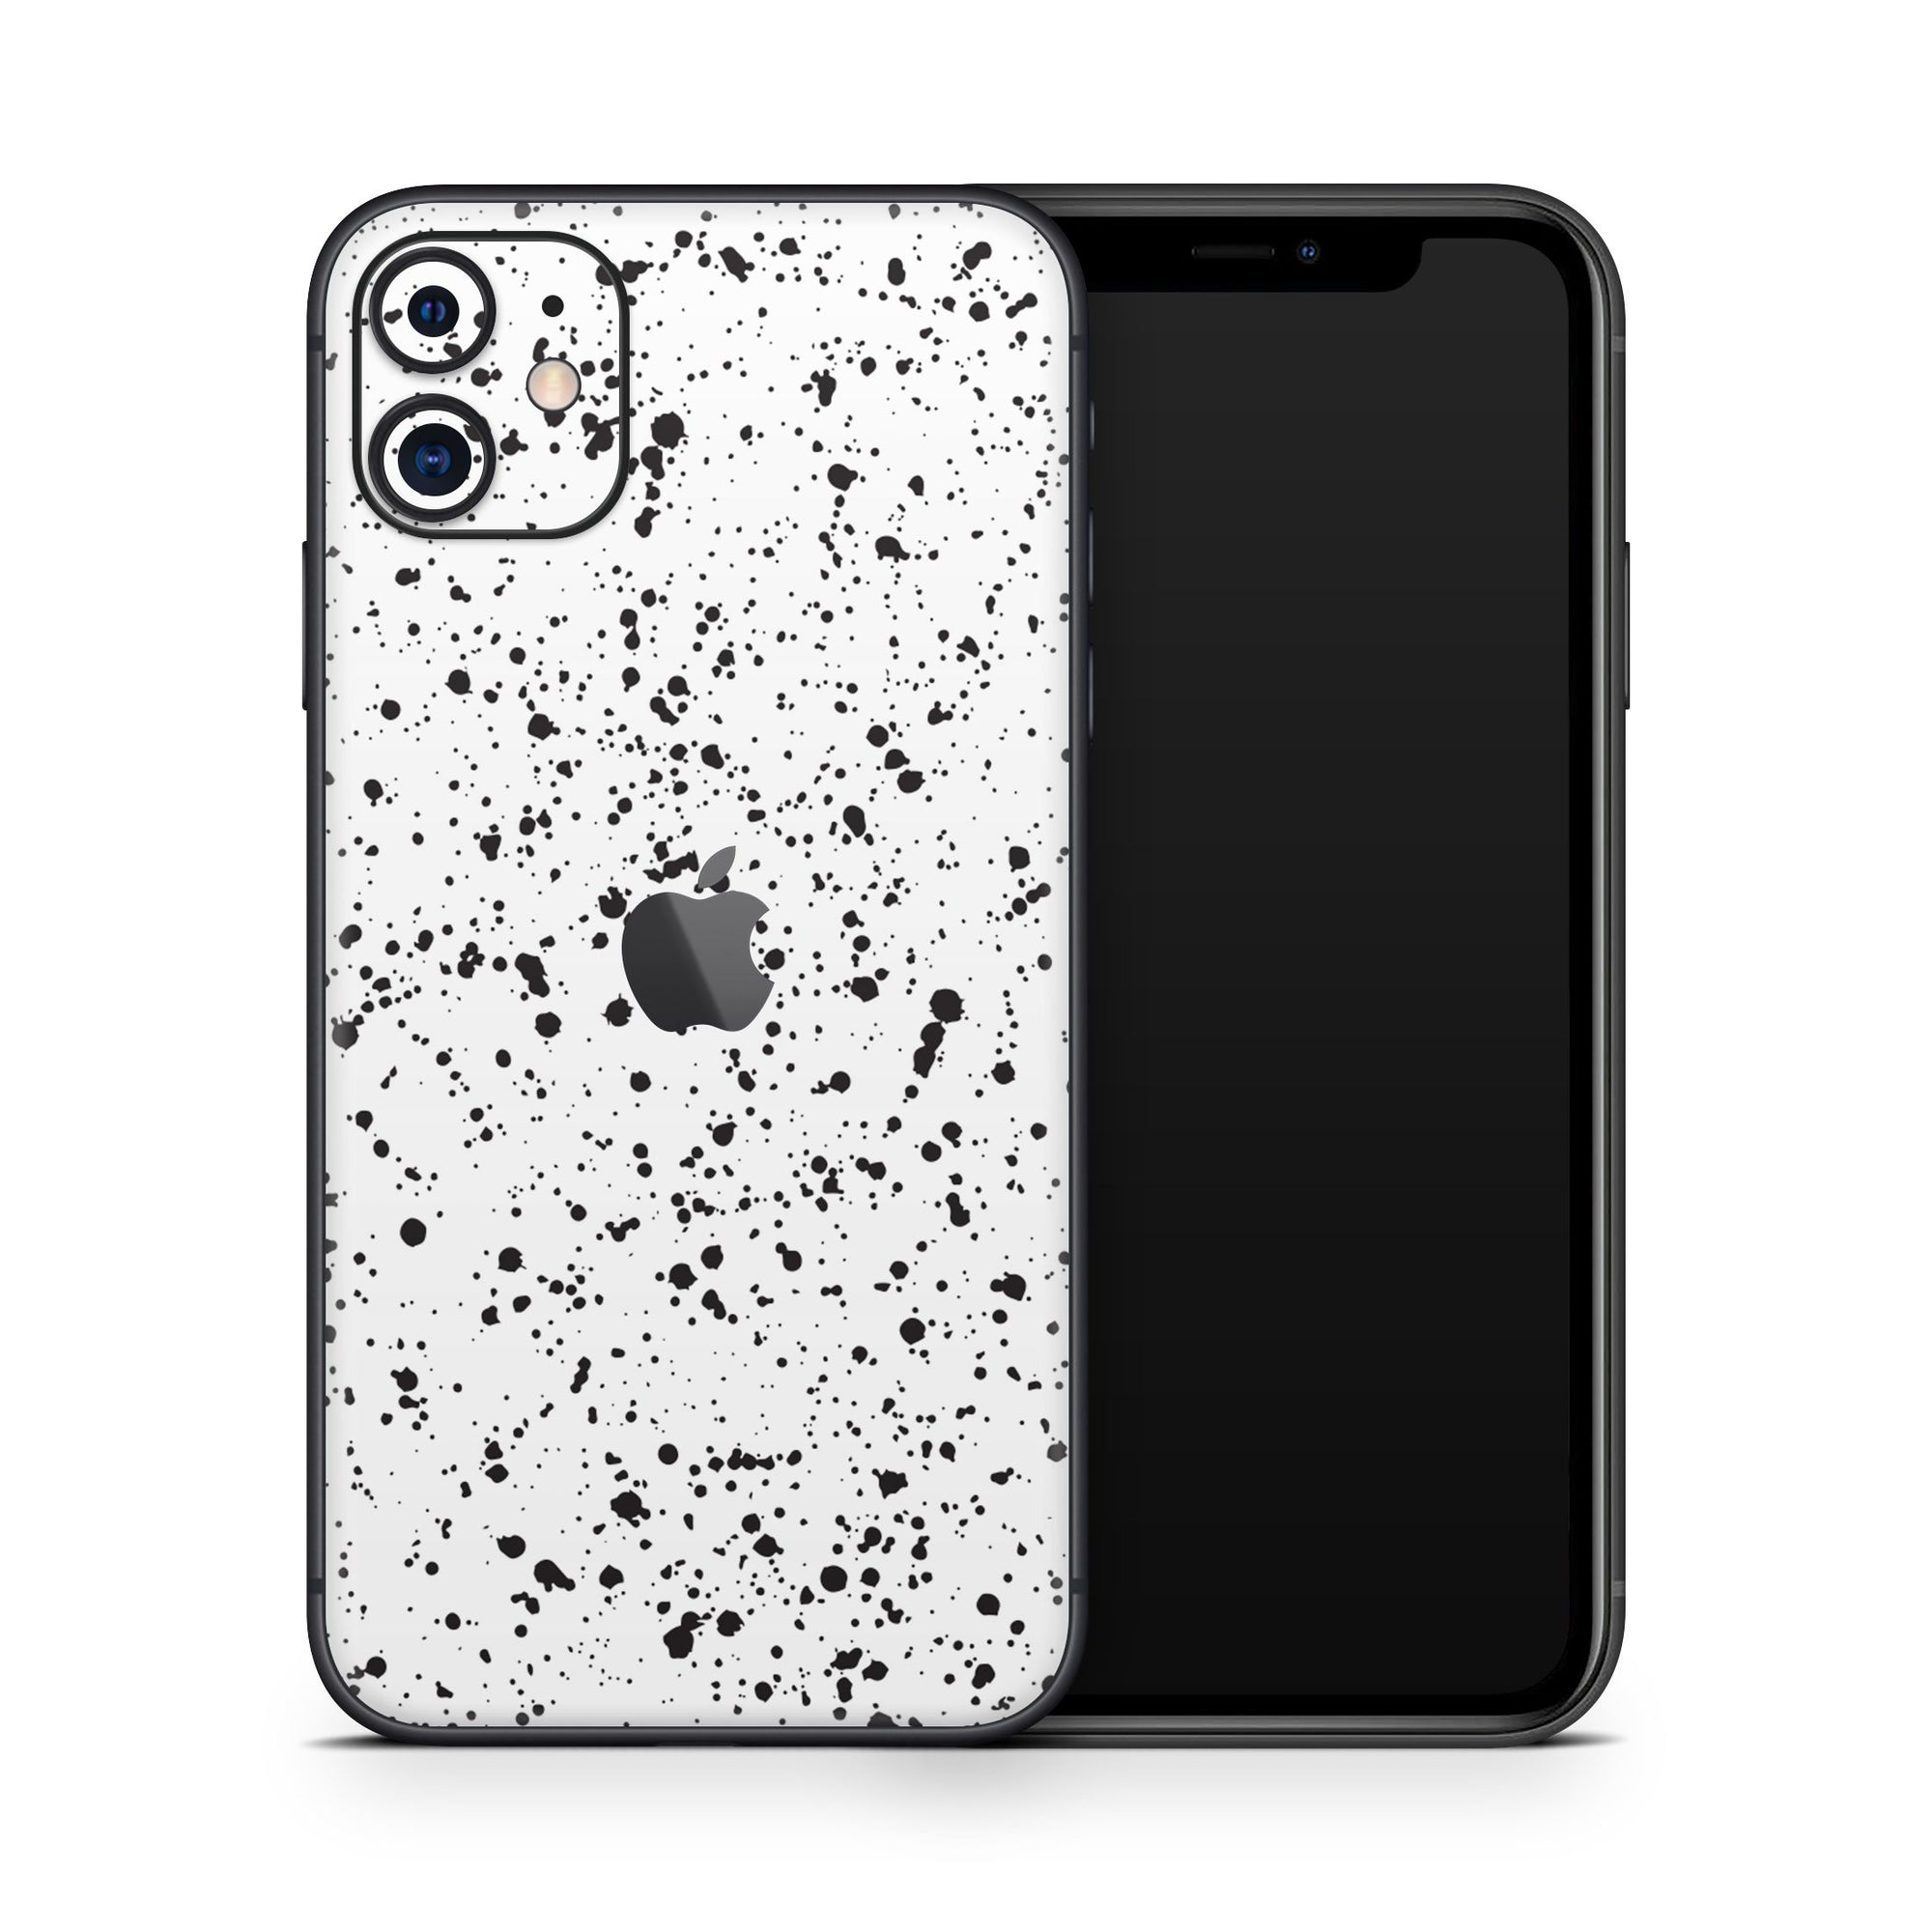 Specked Cover iPhone 11